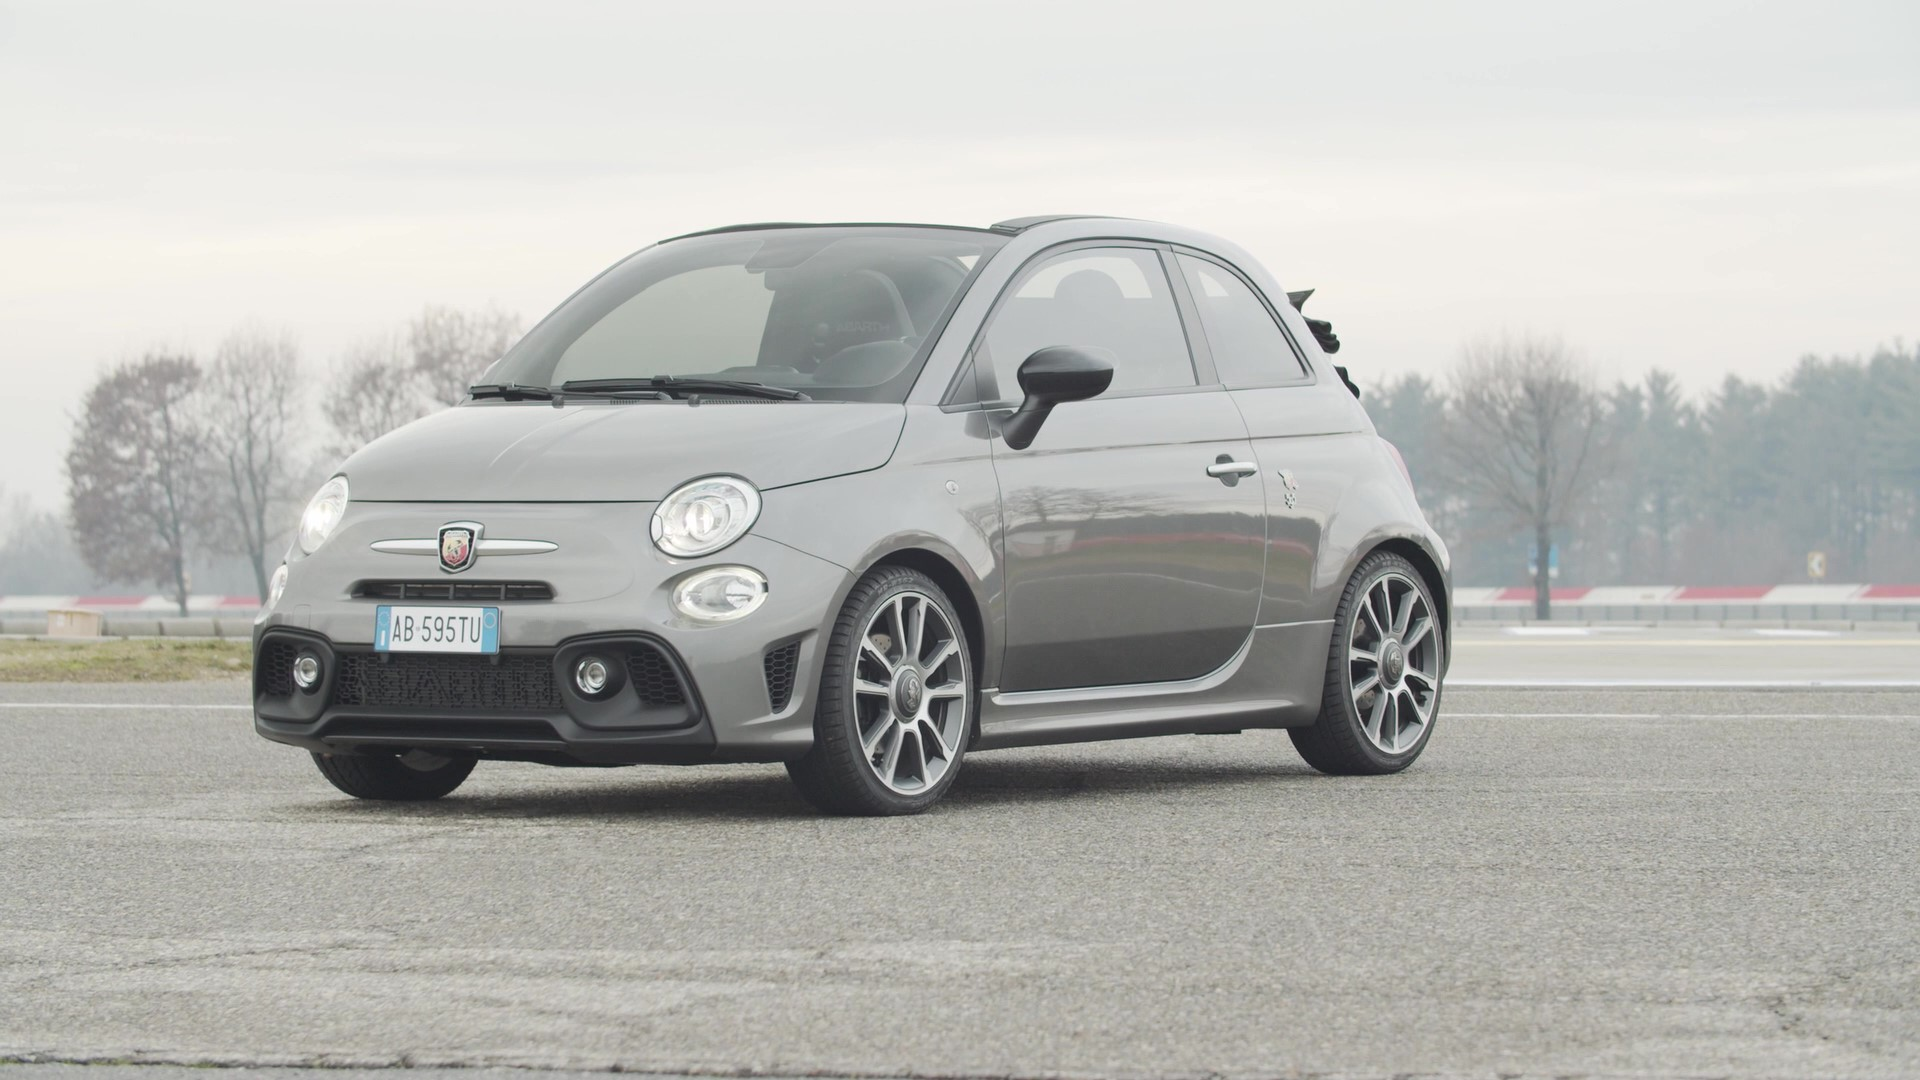 New Abarth 595 Turismo - Footage